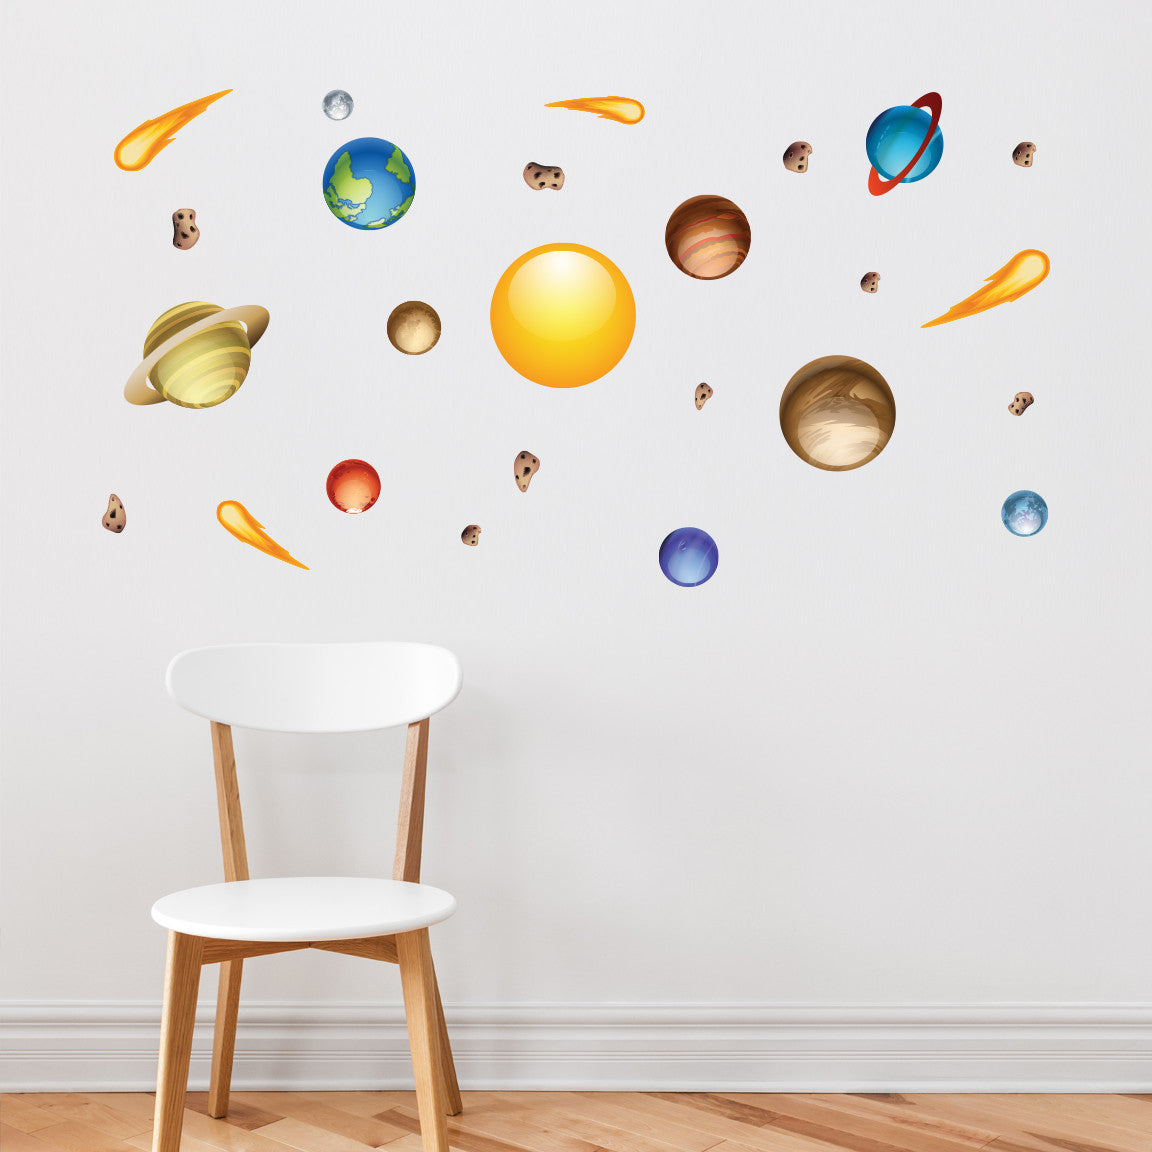 Nursery Mount wall decals - Solar System on wall behind chair!!